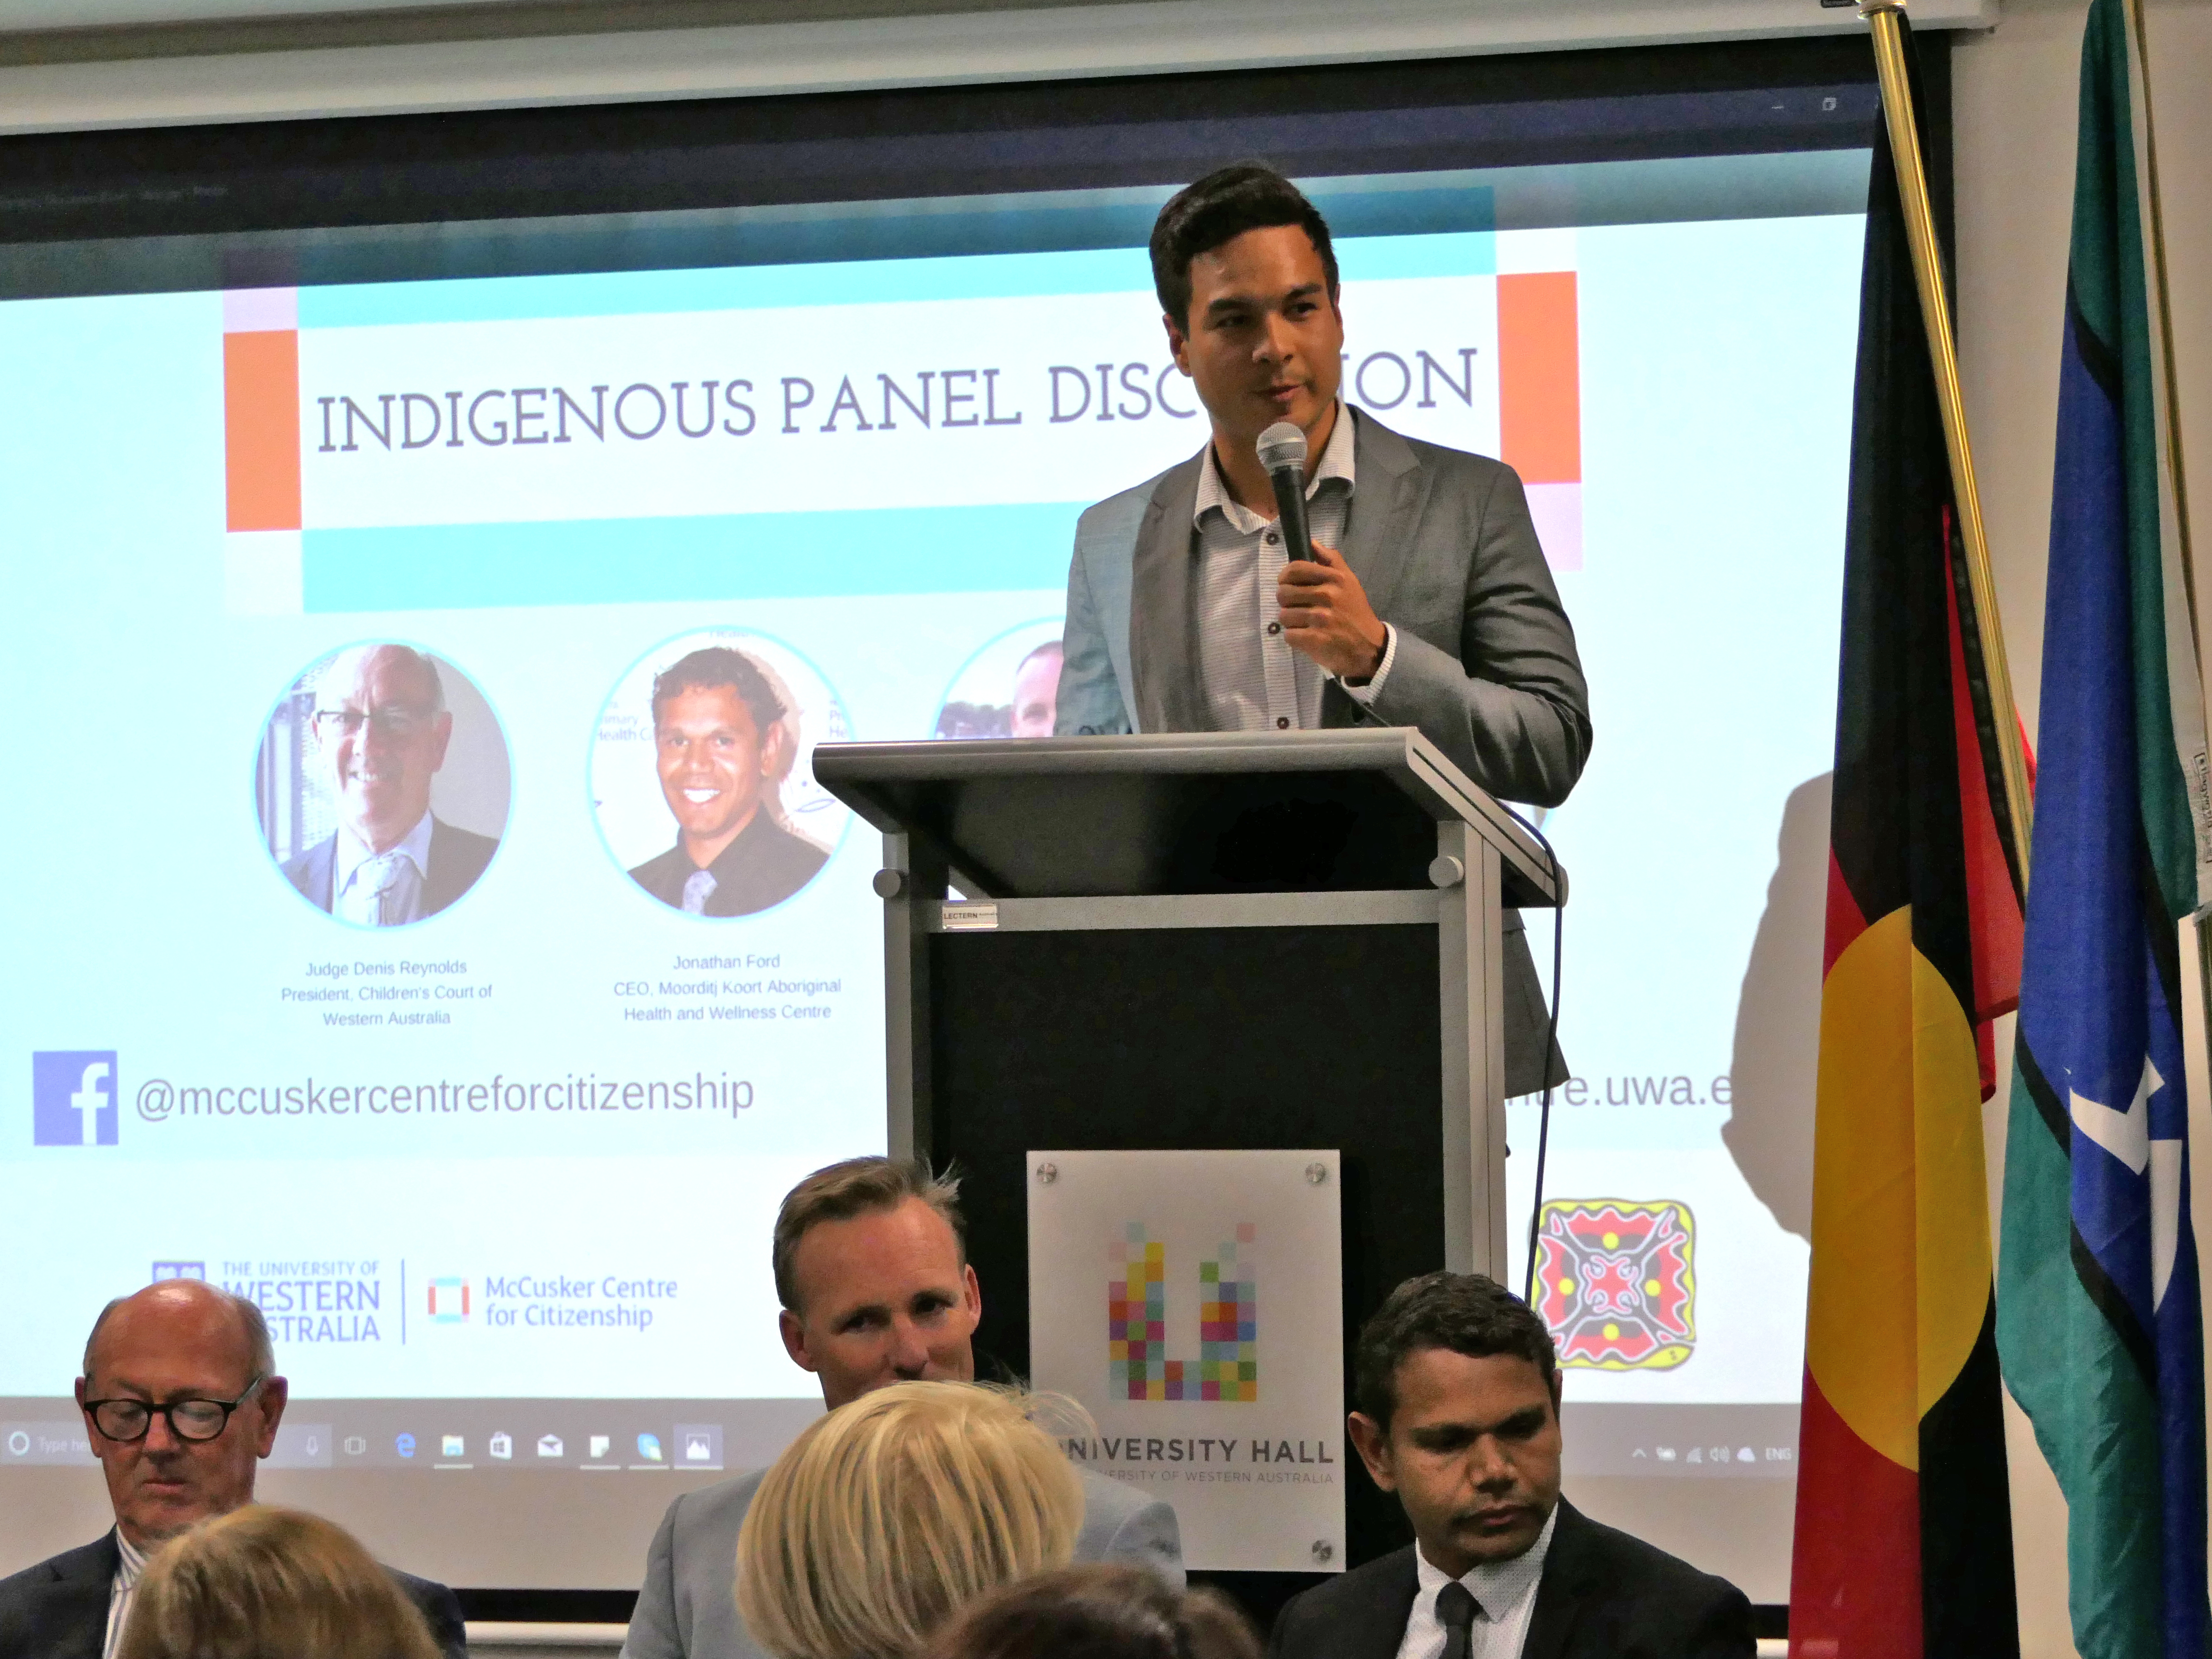 Indigenous Panel Discussion